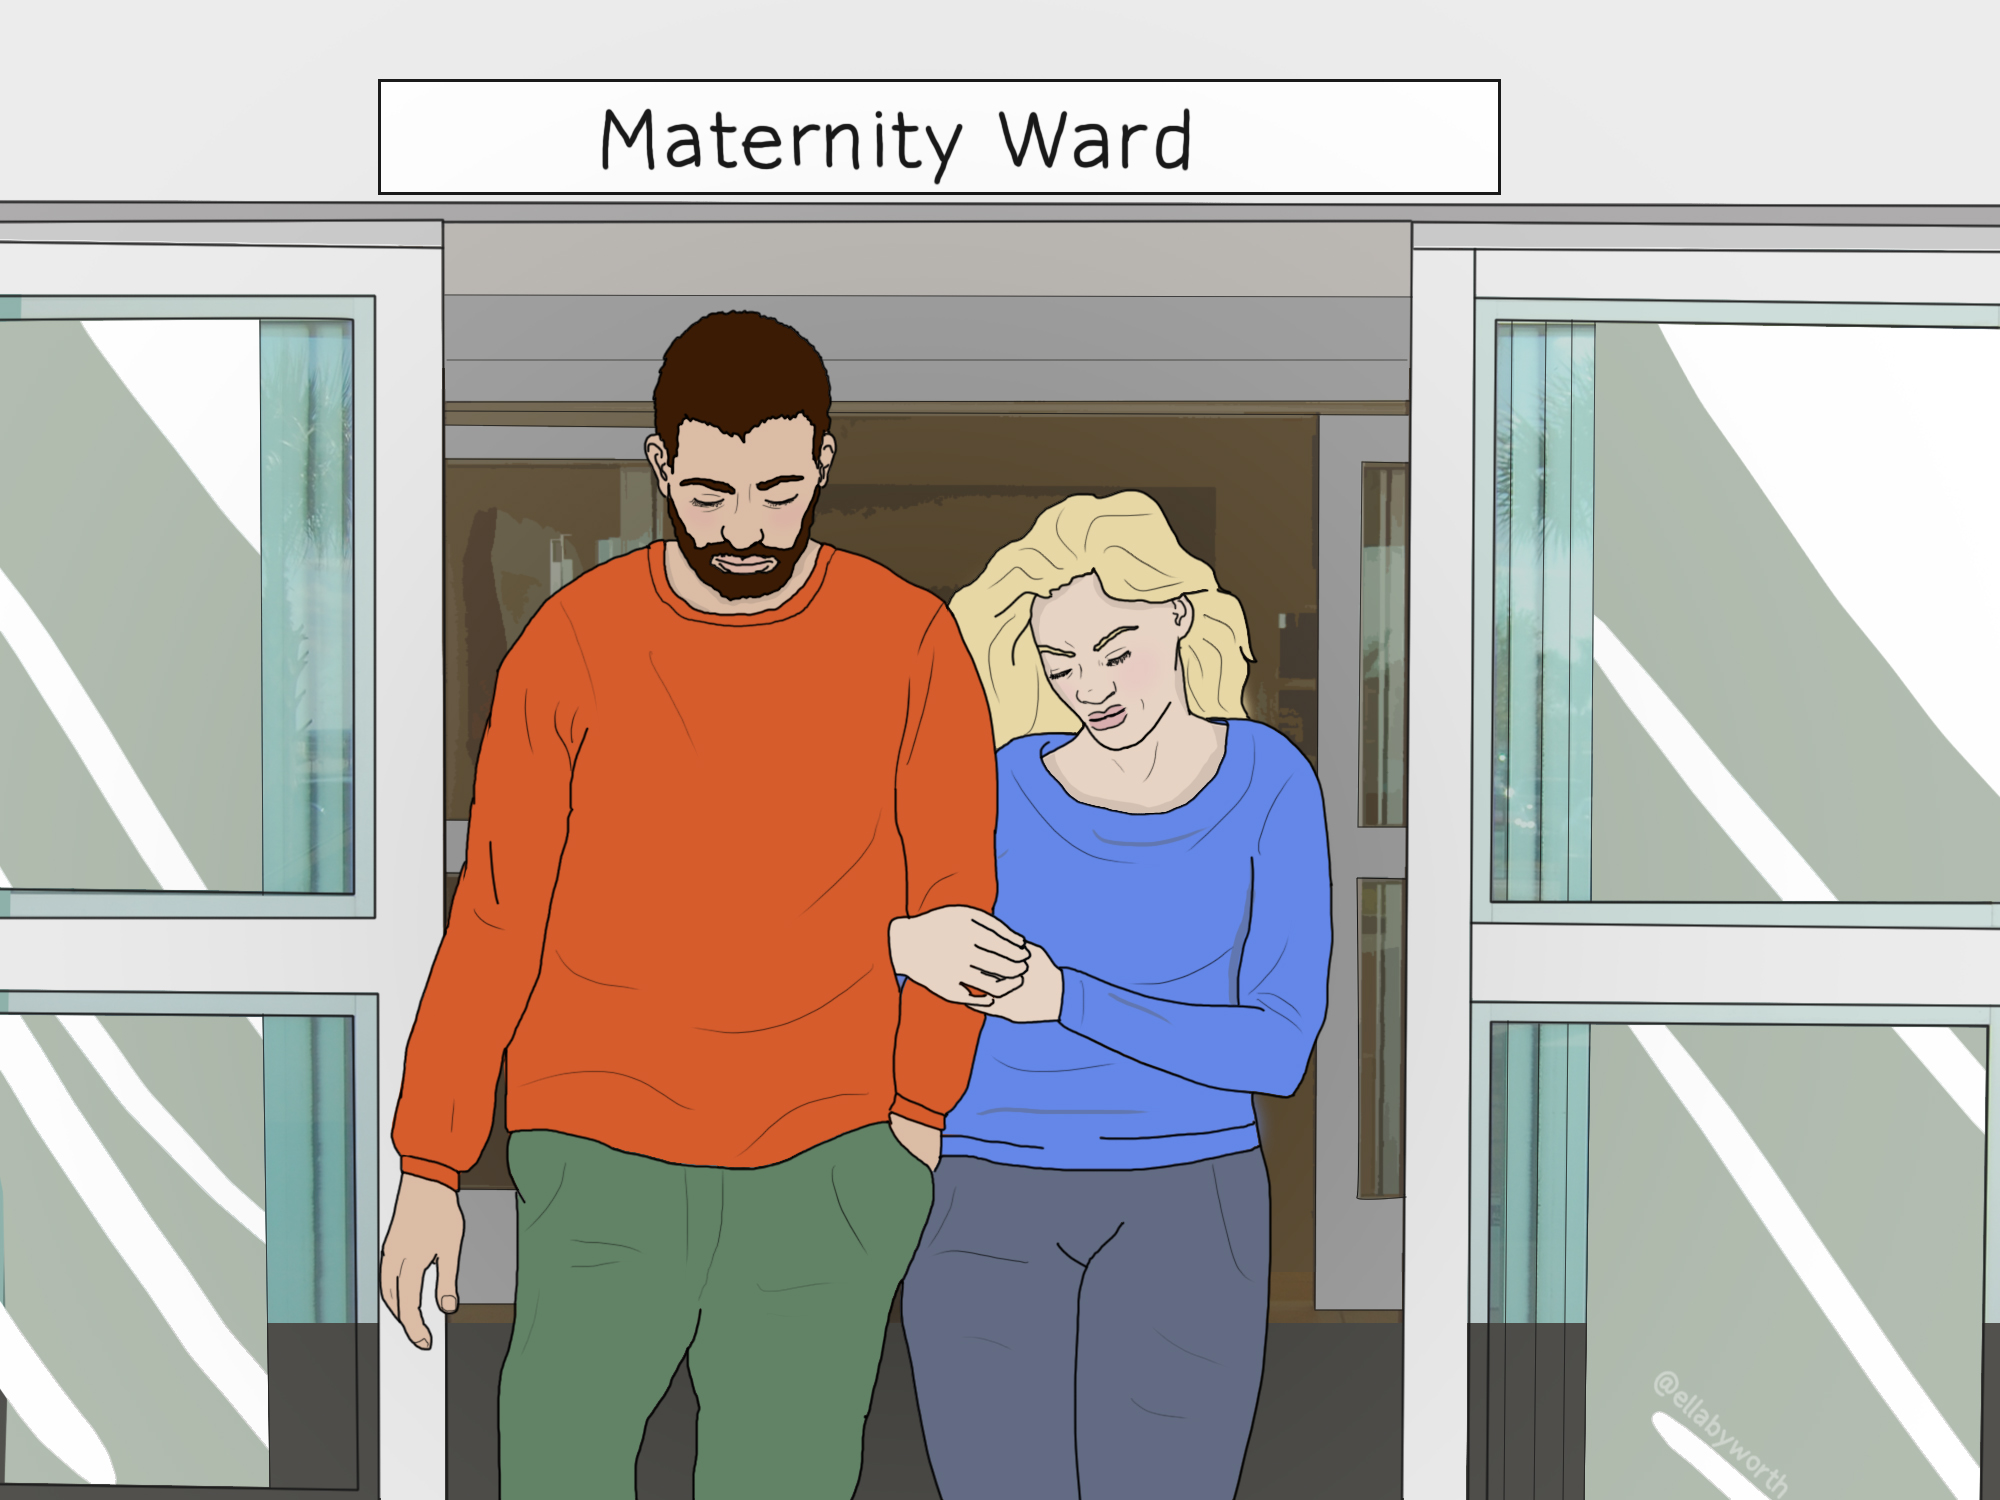 Illustration of a man and woman leaving a maternity ward